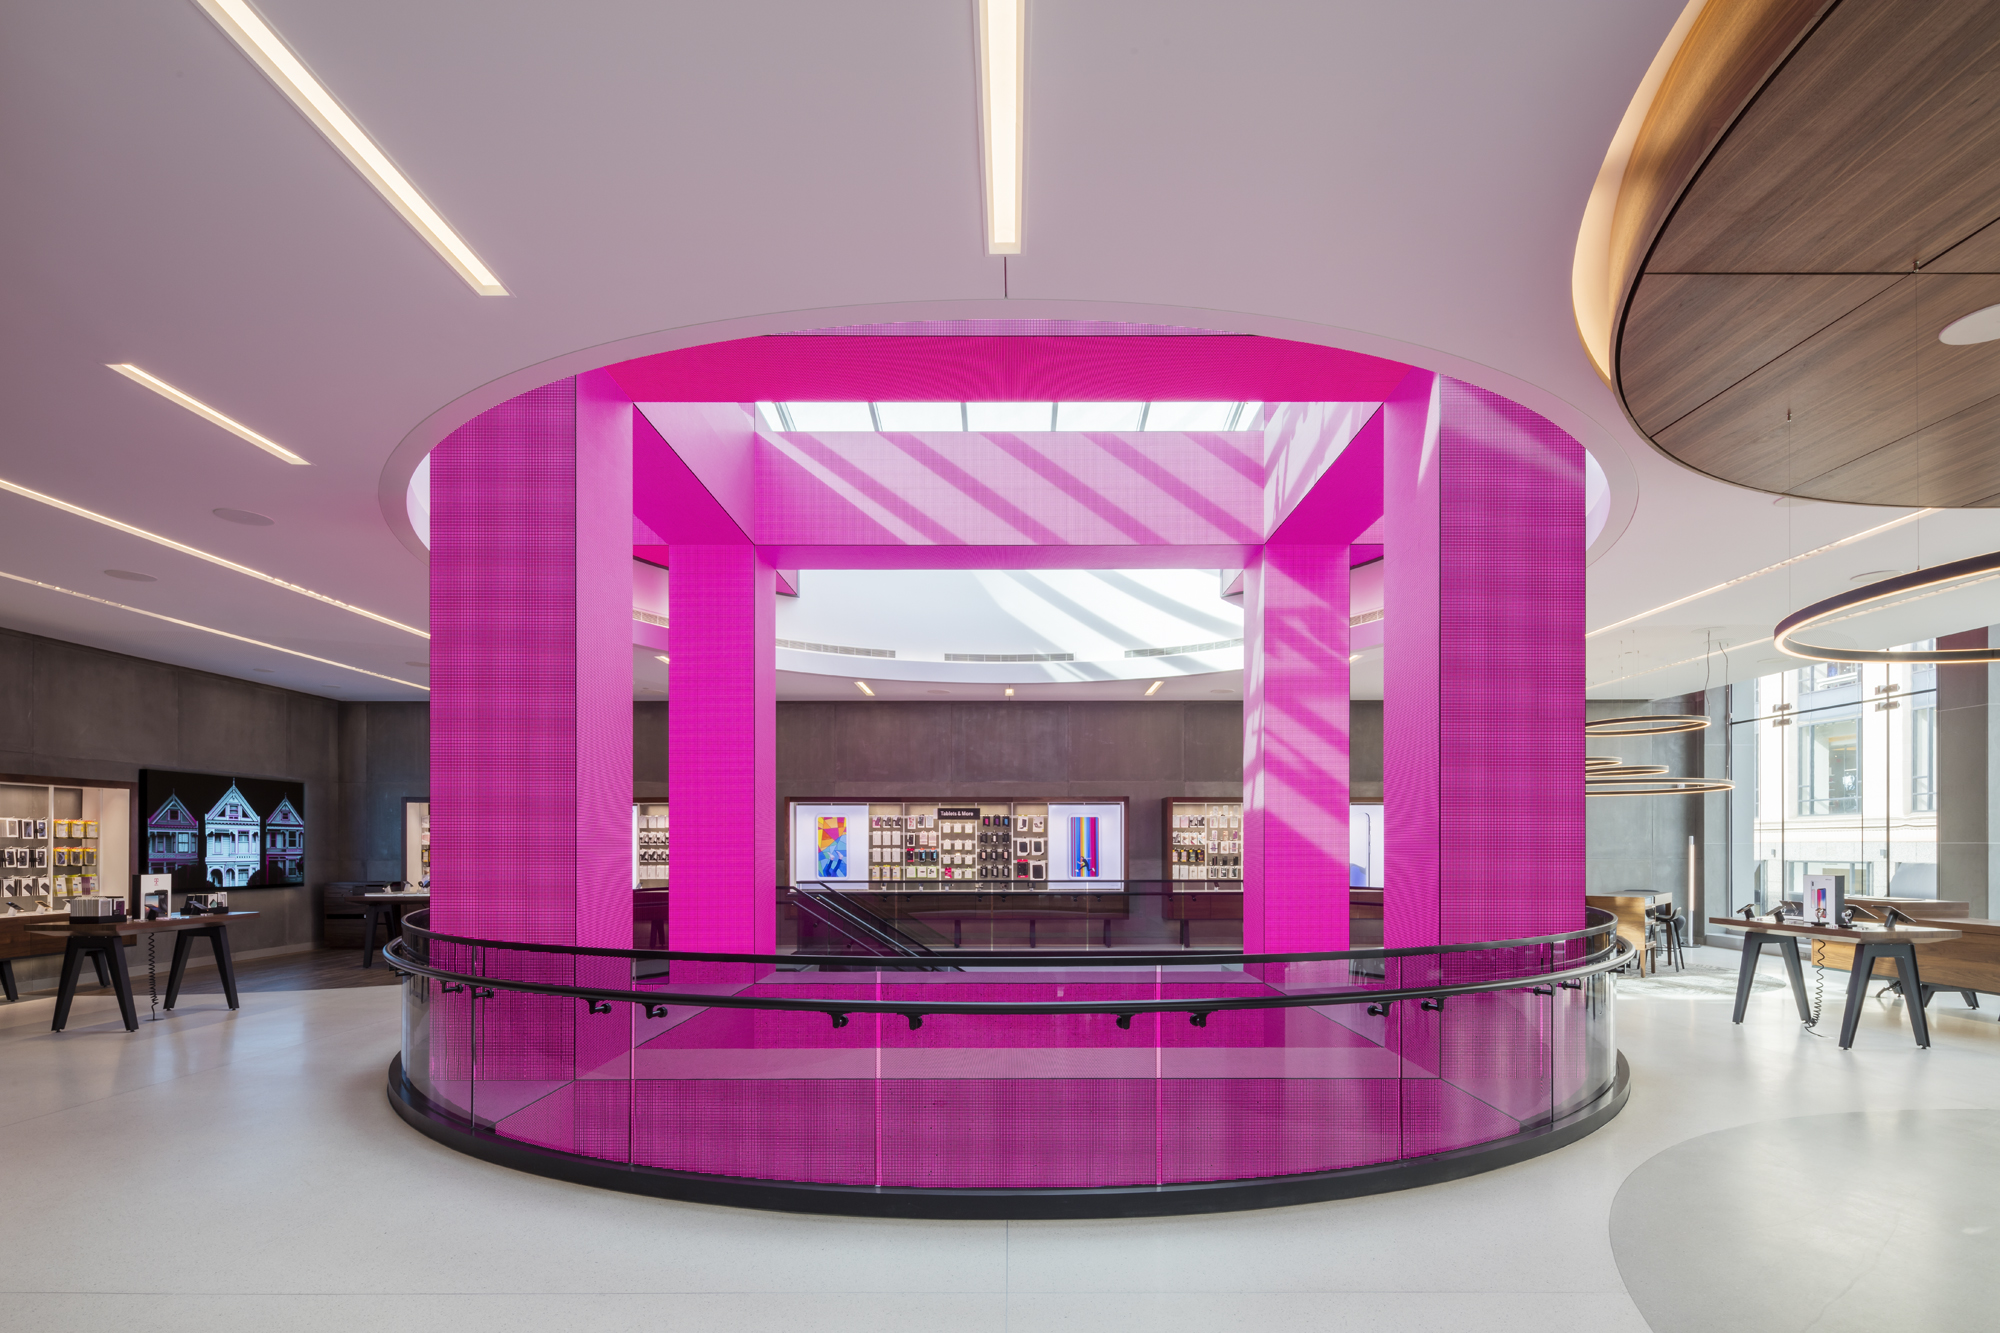 T-Mobile Signature Store, San Francisco, CA - constructed by Retail Construction Services, Inc.